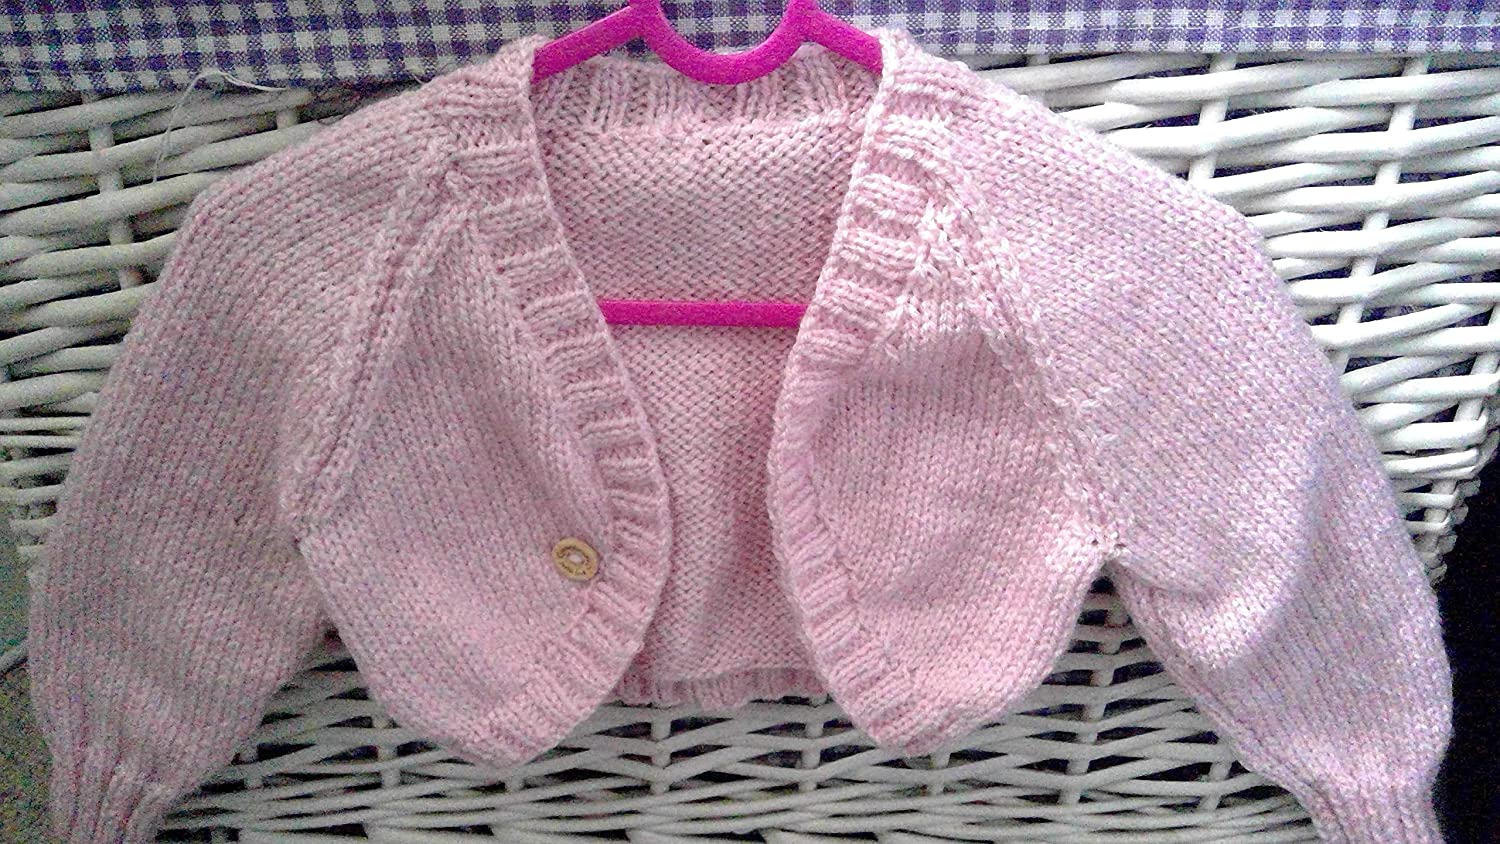 Peony dress and cardigan set aged 2-3 years Gorgeous little girls hand made cotton dress in pink peony fabric with powder pink knitted bolero cardigan.